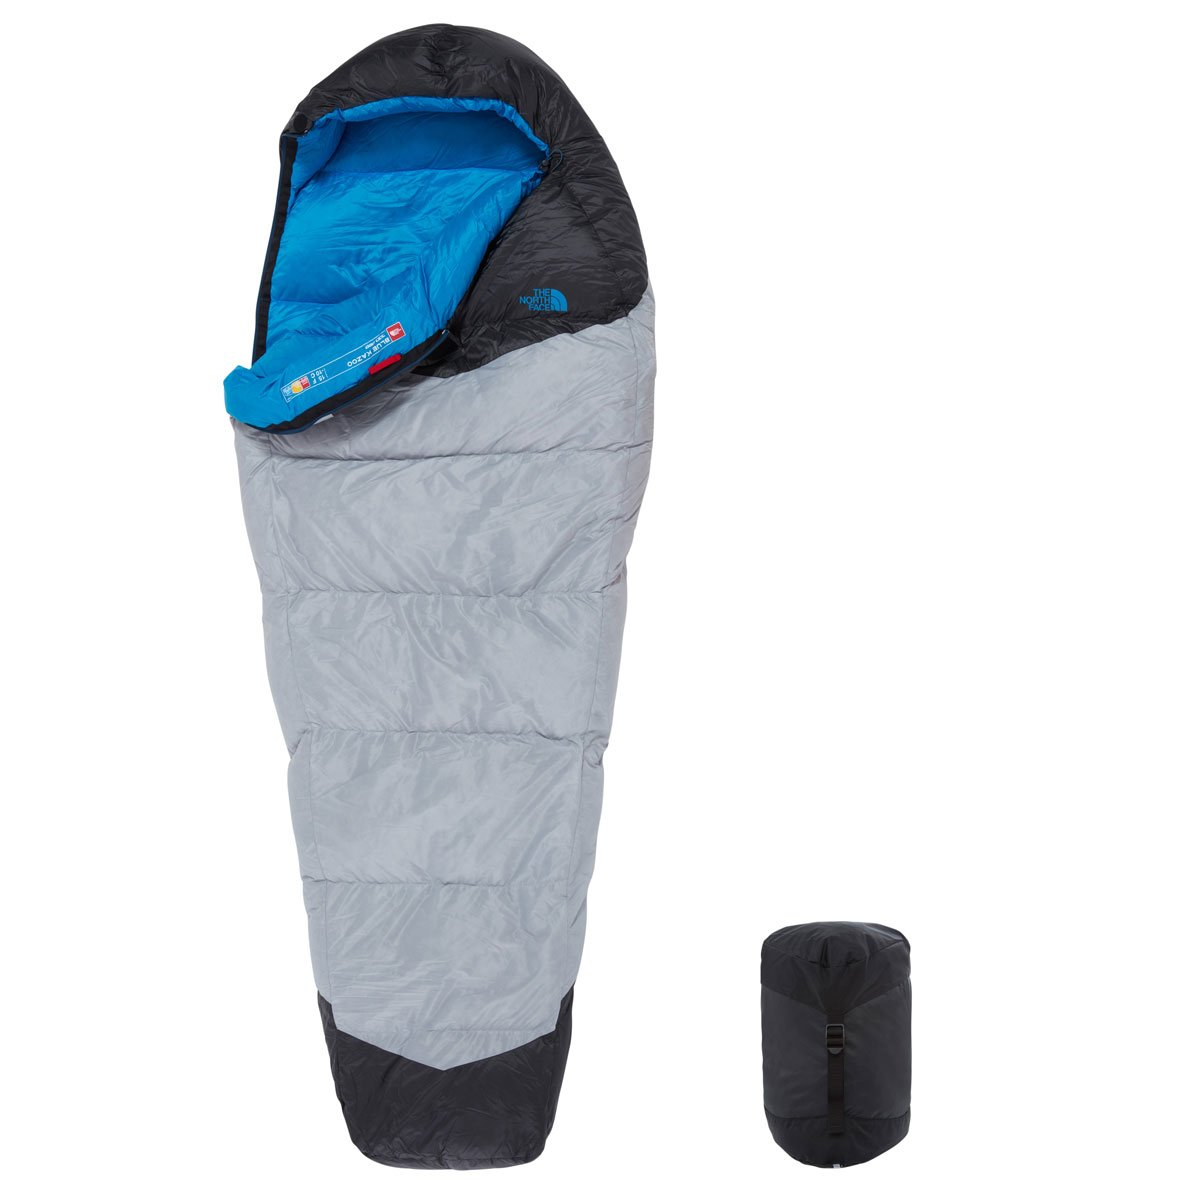 The North Face Blue Kazoo Saco de Dormir, Mujer: Amazon.es: Deportes y aire libre